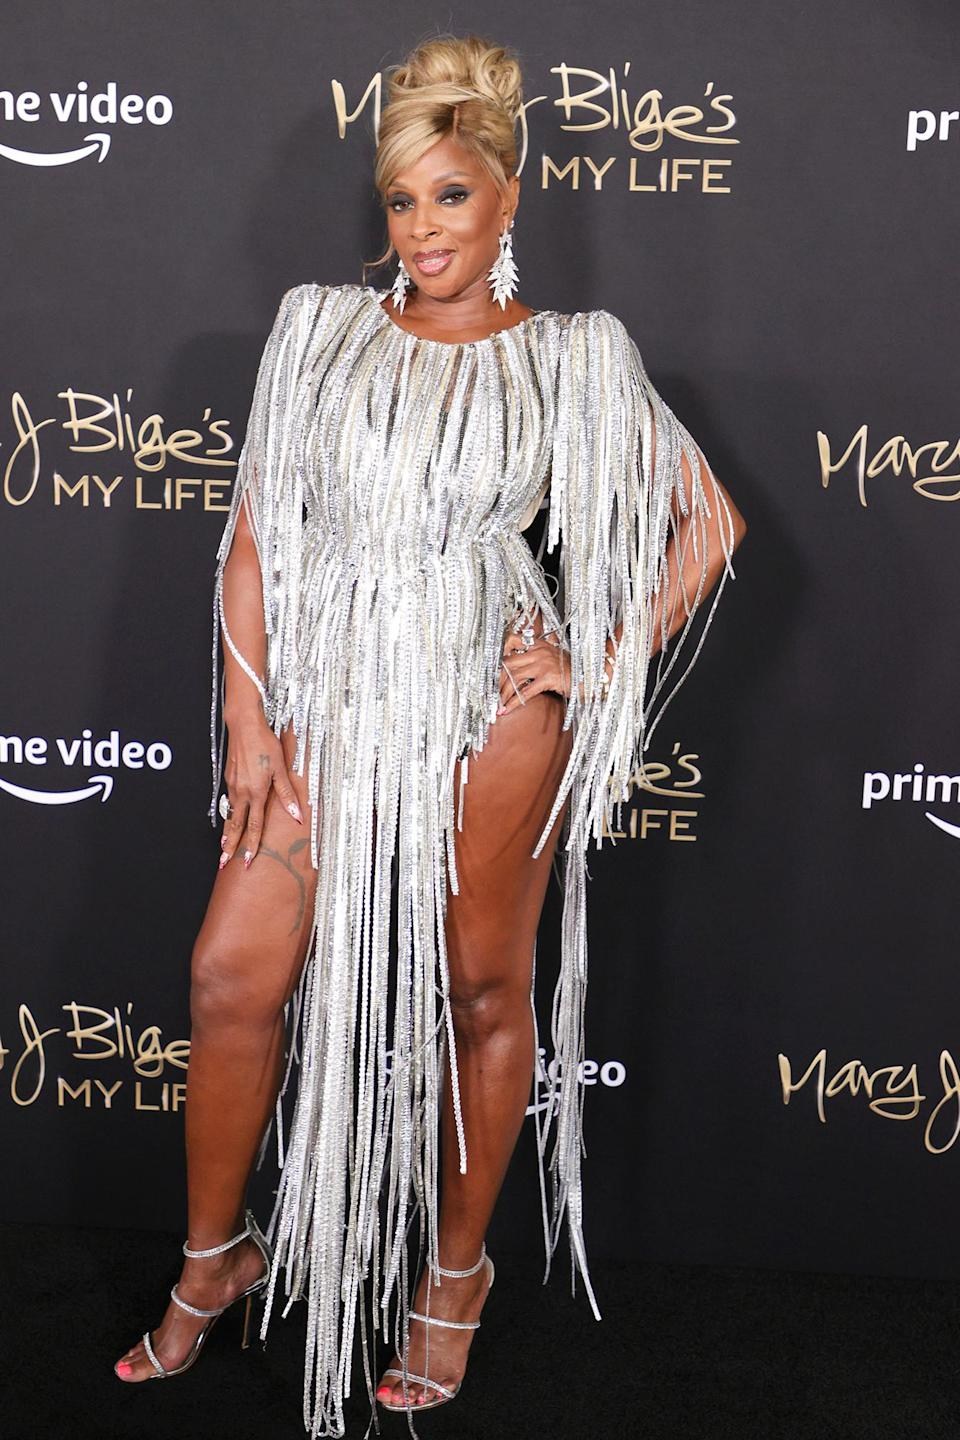 <p>Mary J. Blige dazzles in a metallic dress at the premiere of her documentary <i>My Life</i> on June 23 at Jazz at Lincoln Center in N.Y.C.</p>